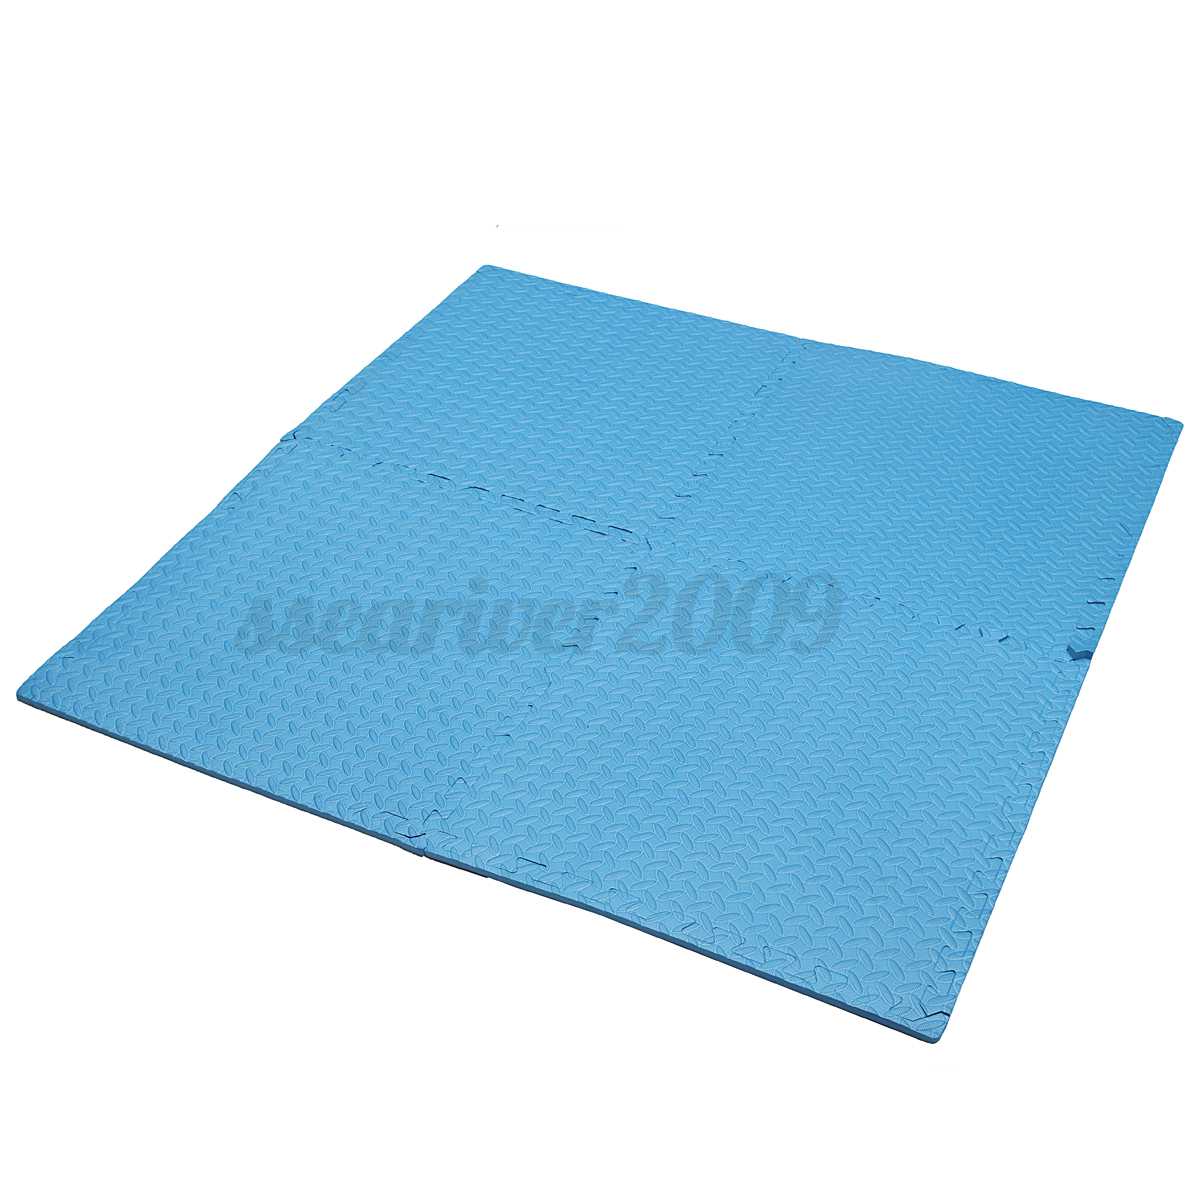 Pcs soft foam interlocking floor exercise mats for baby s